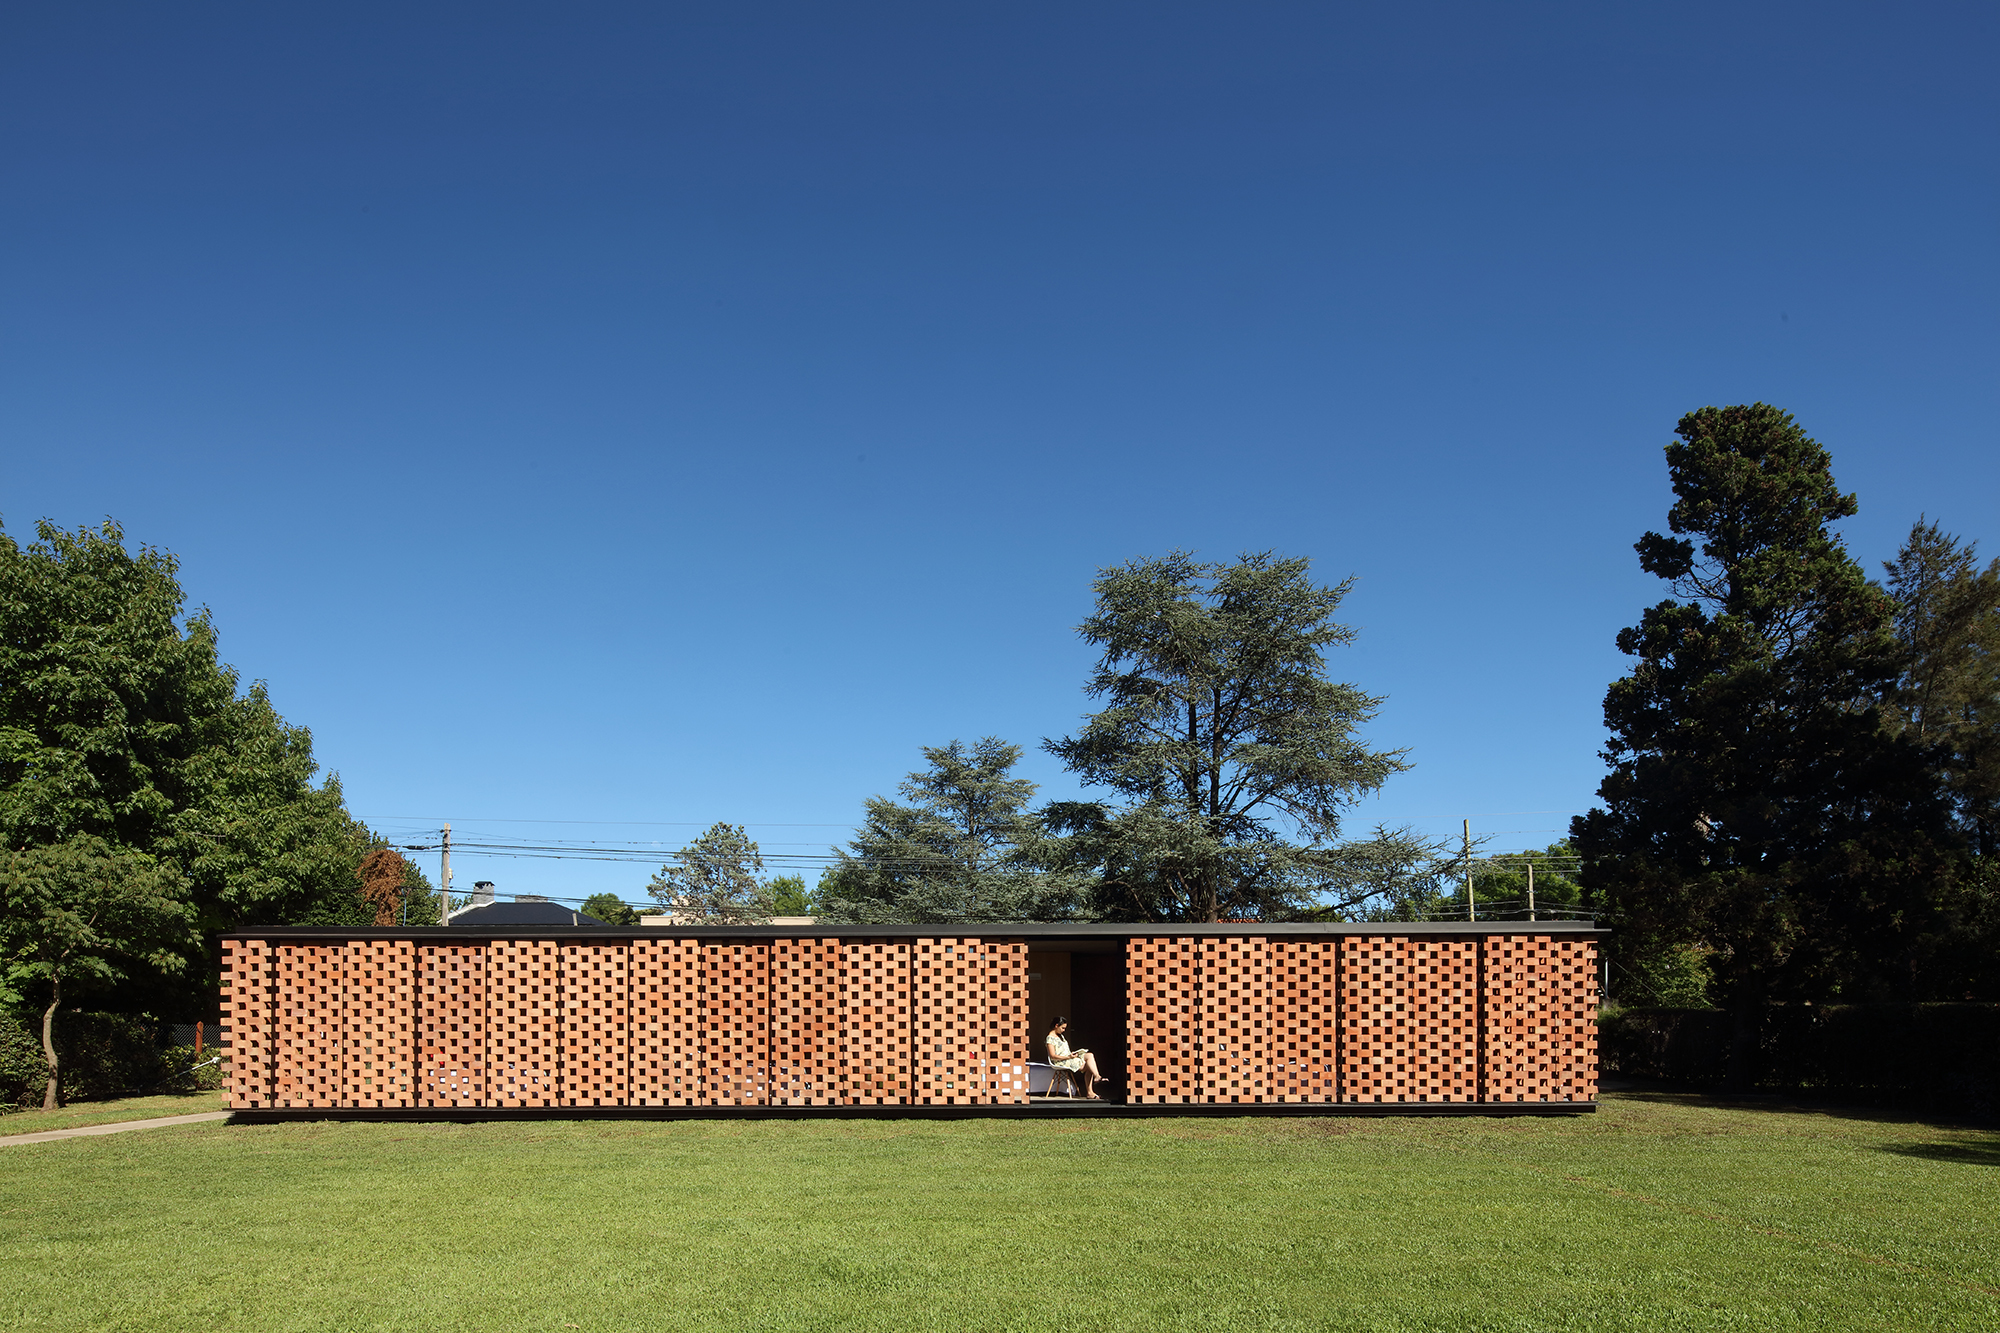 Gallery of experimental brick pavilion estudio botteri for Pared de 15 ladrillo comun